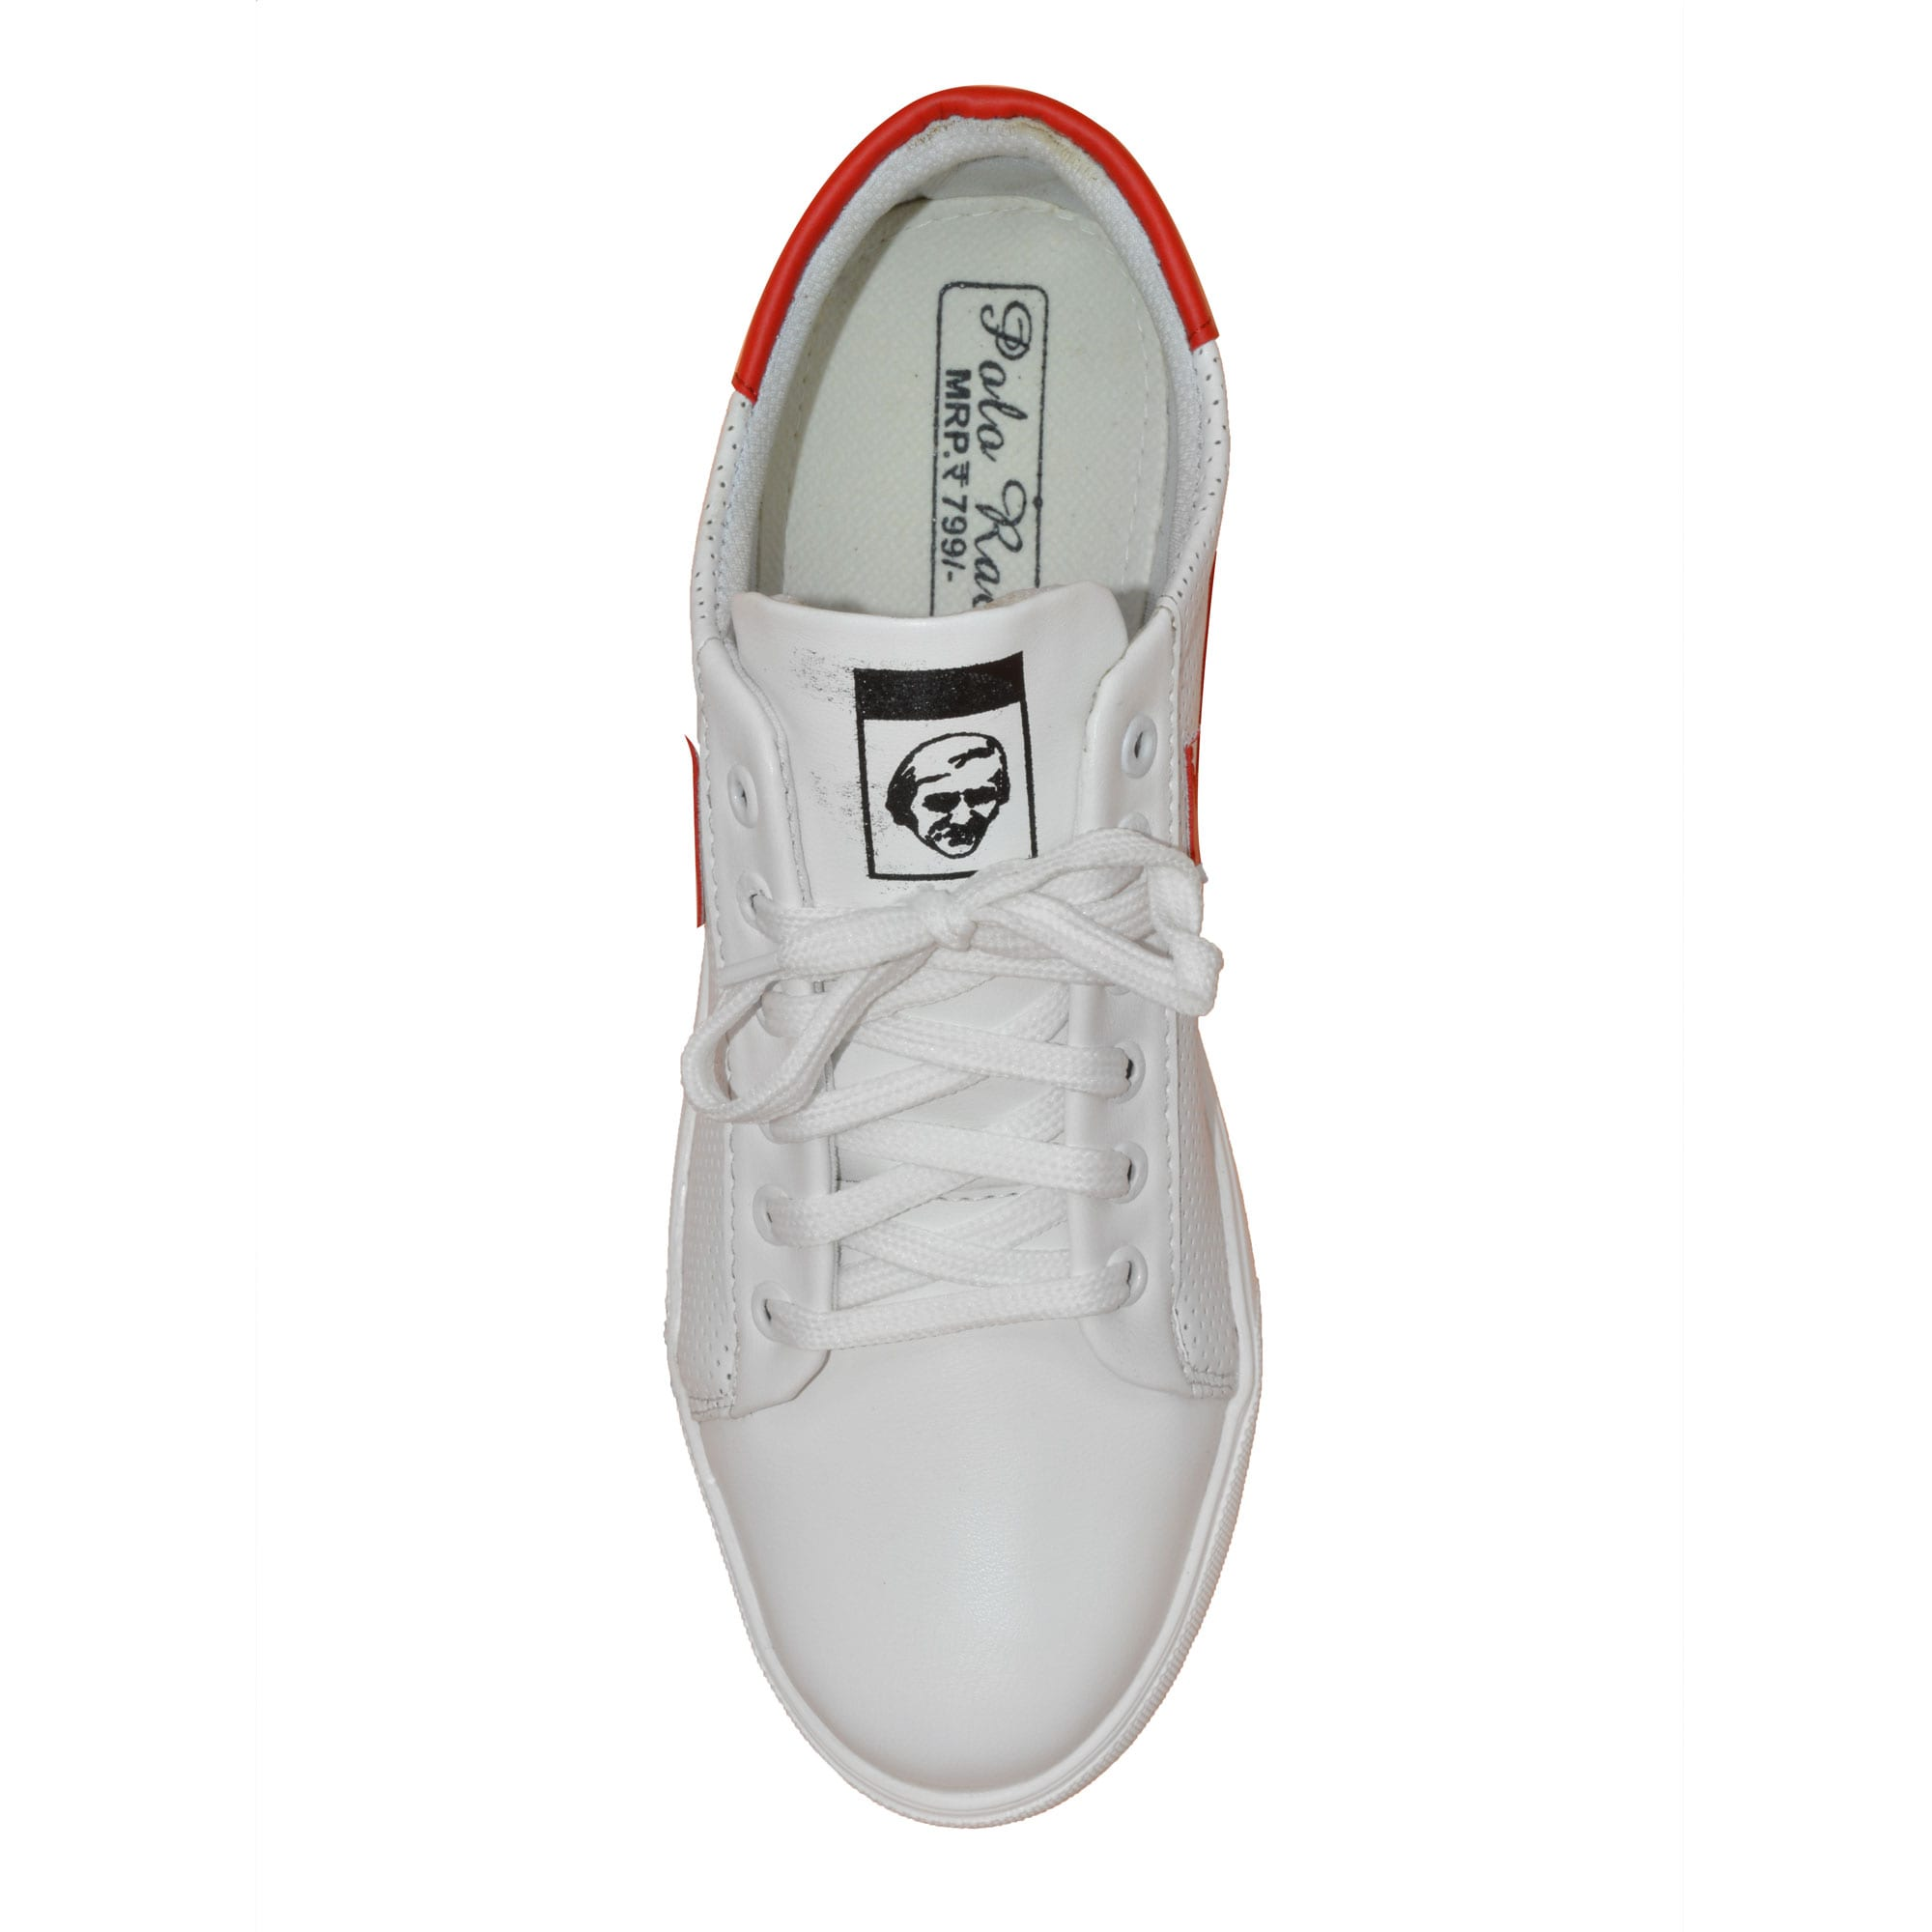 IMCOLUS110.51_RED MENS PARTYWEAR & WHITE FOAM STYLESH CANVAS SHOES IMCOLUS110.51_RED (RED,6-10,8 PAIR)